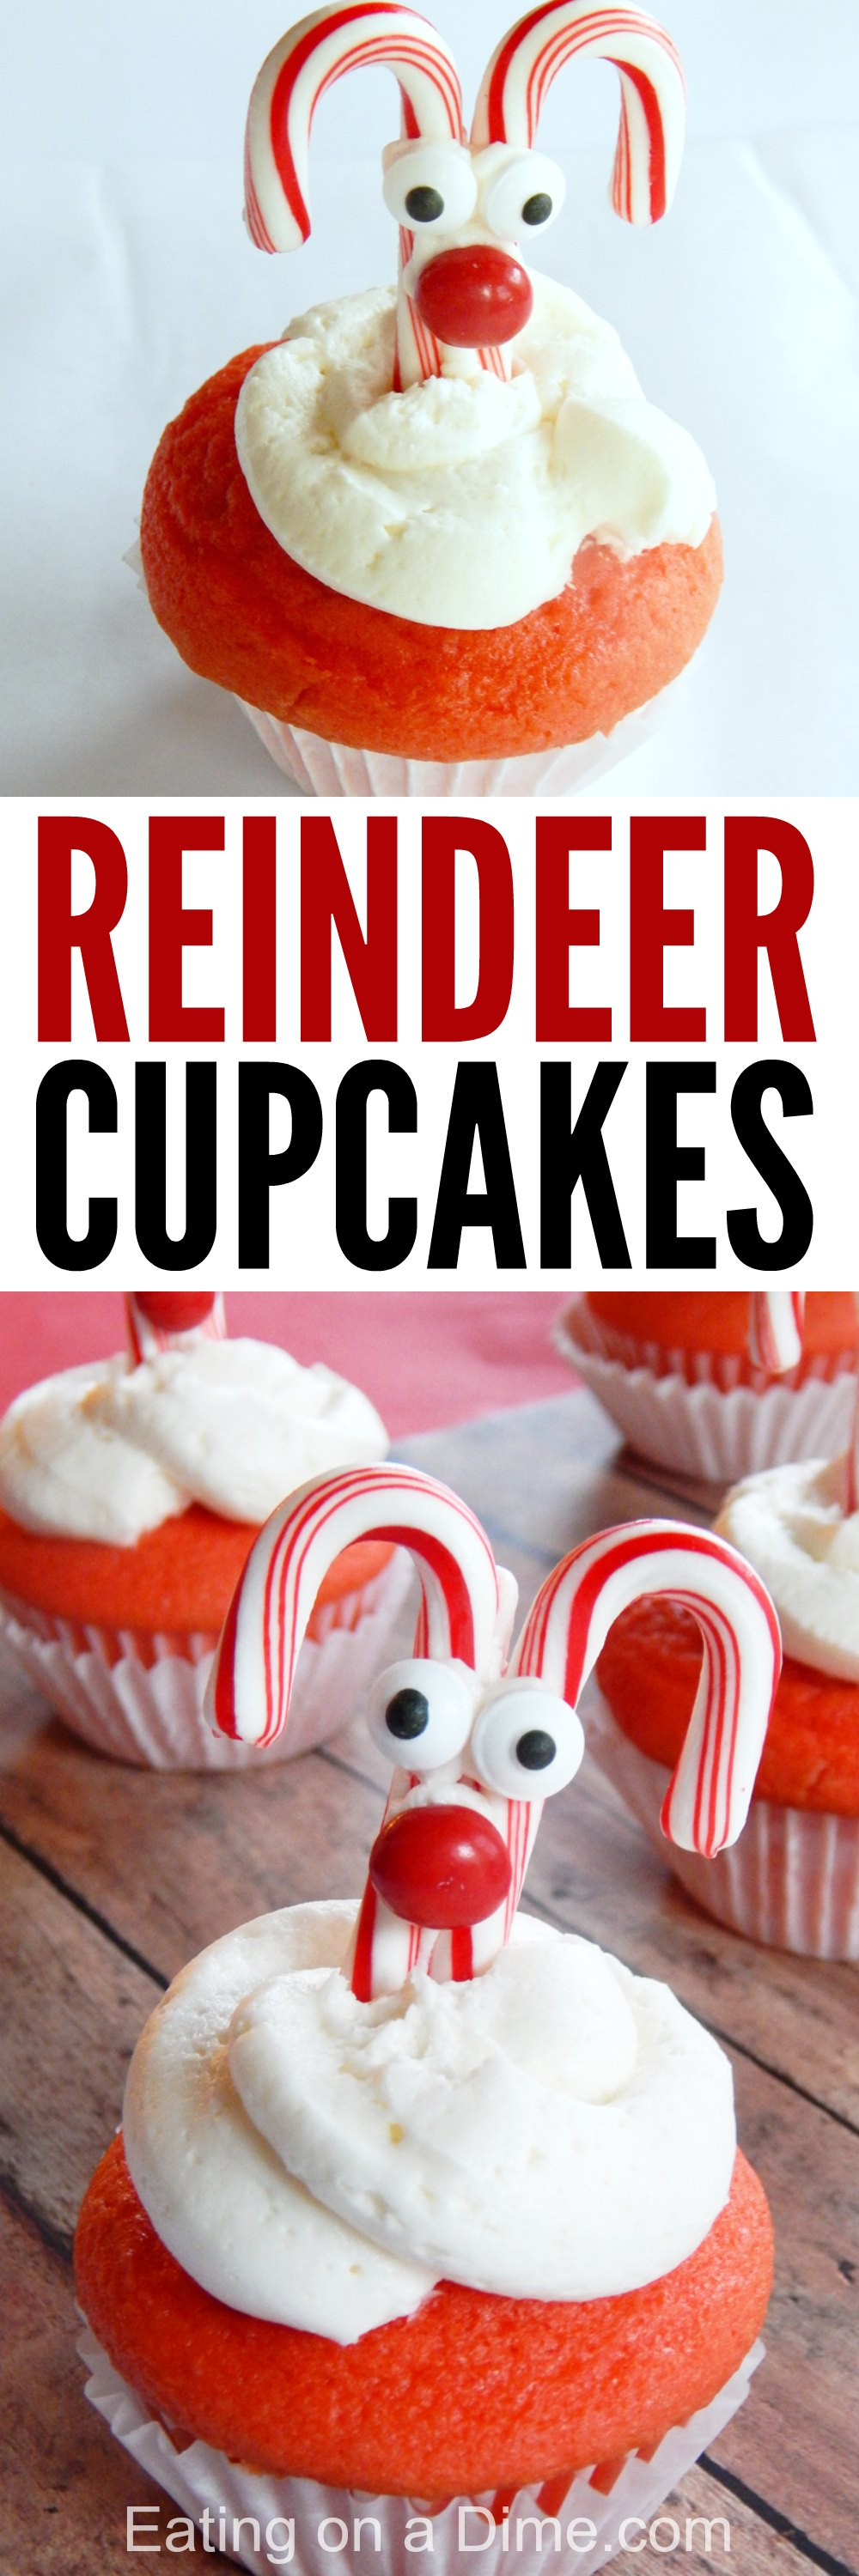 Make these easy reindeer cupcakesfor your next holiday party.These adorable Christmas cupcakesare so cute!We love Christmas cupcake recipes!